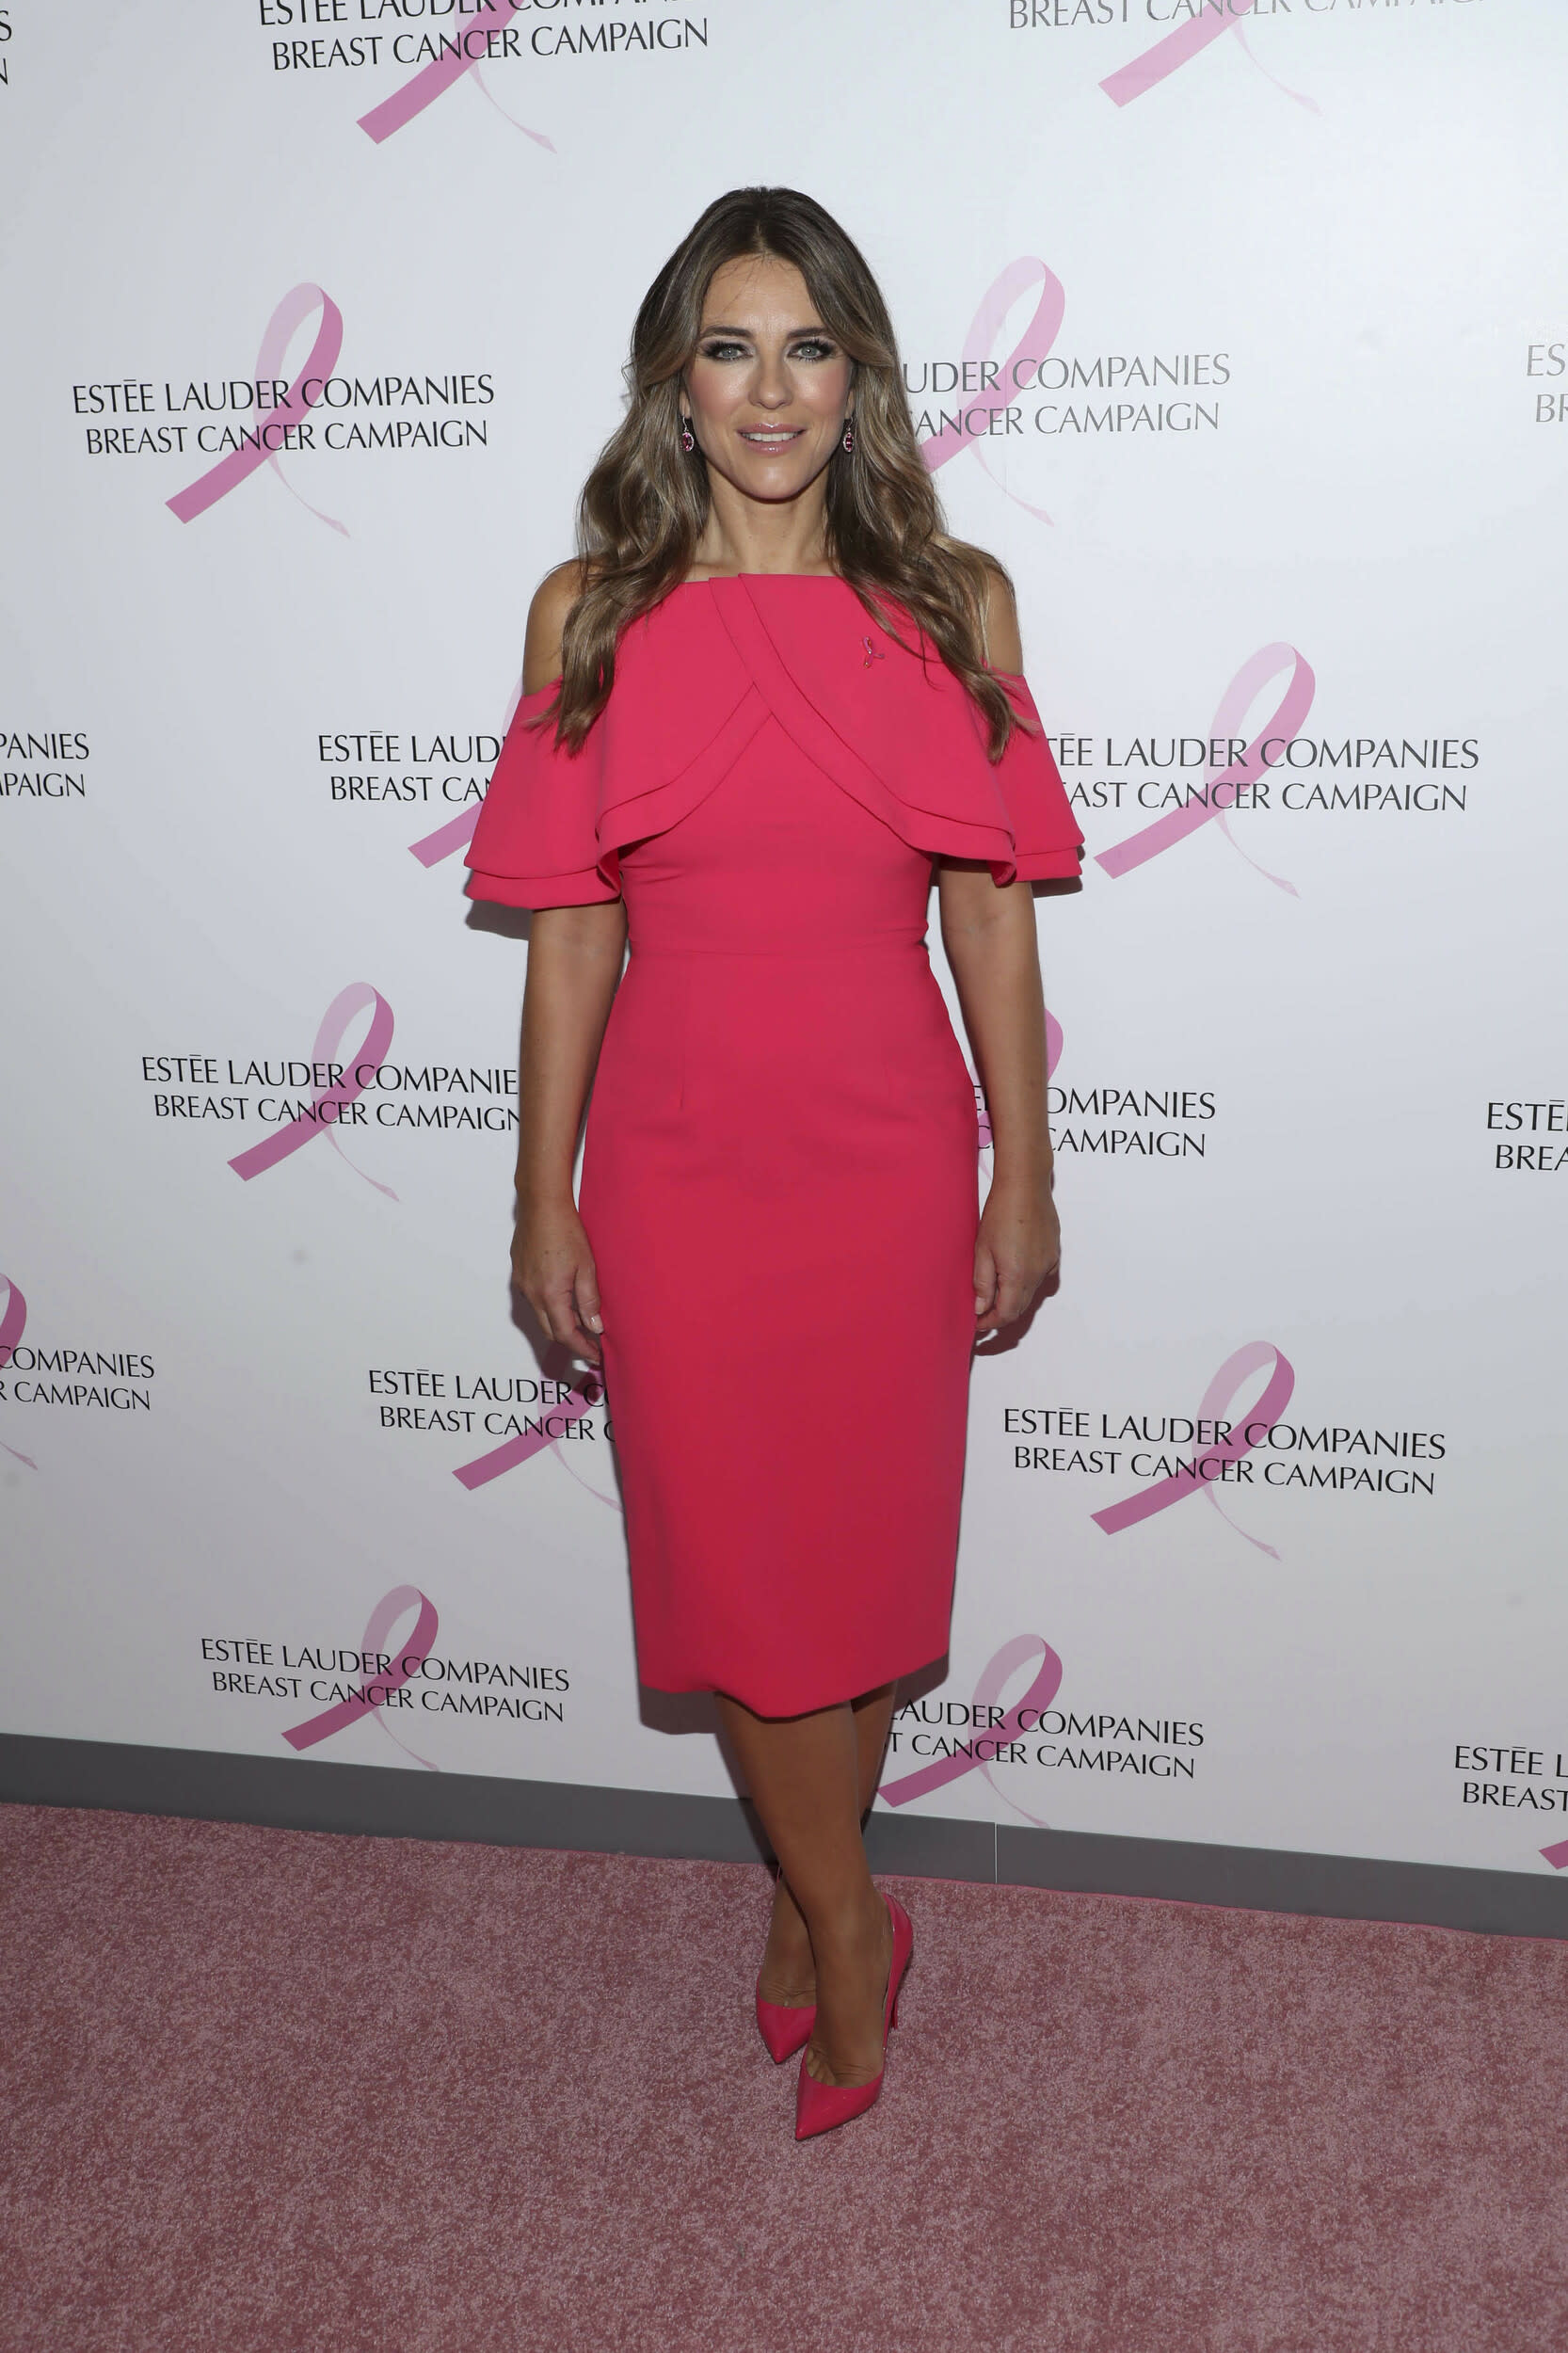 Photo by: John Nacion/STAR MAX/IPx 2018 10/1/18 Elizabeth Hurley at The Estee Lauder Companies Breast Cancer Campaign in New York City.